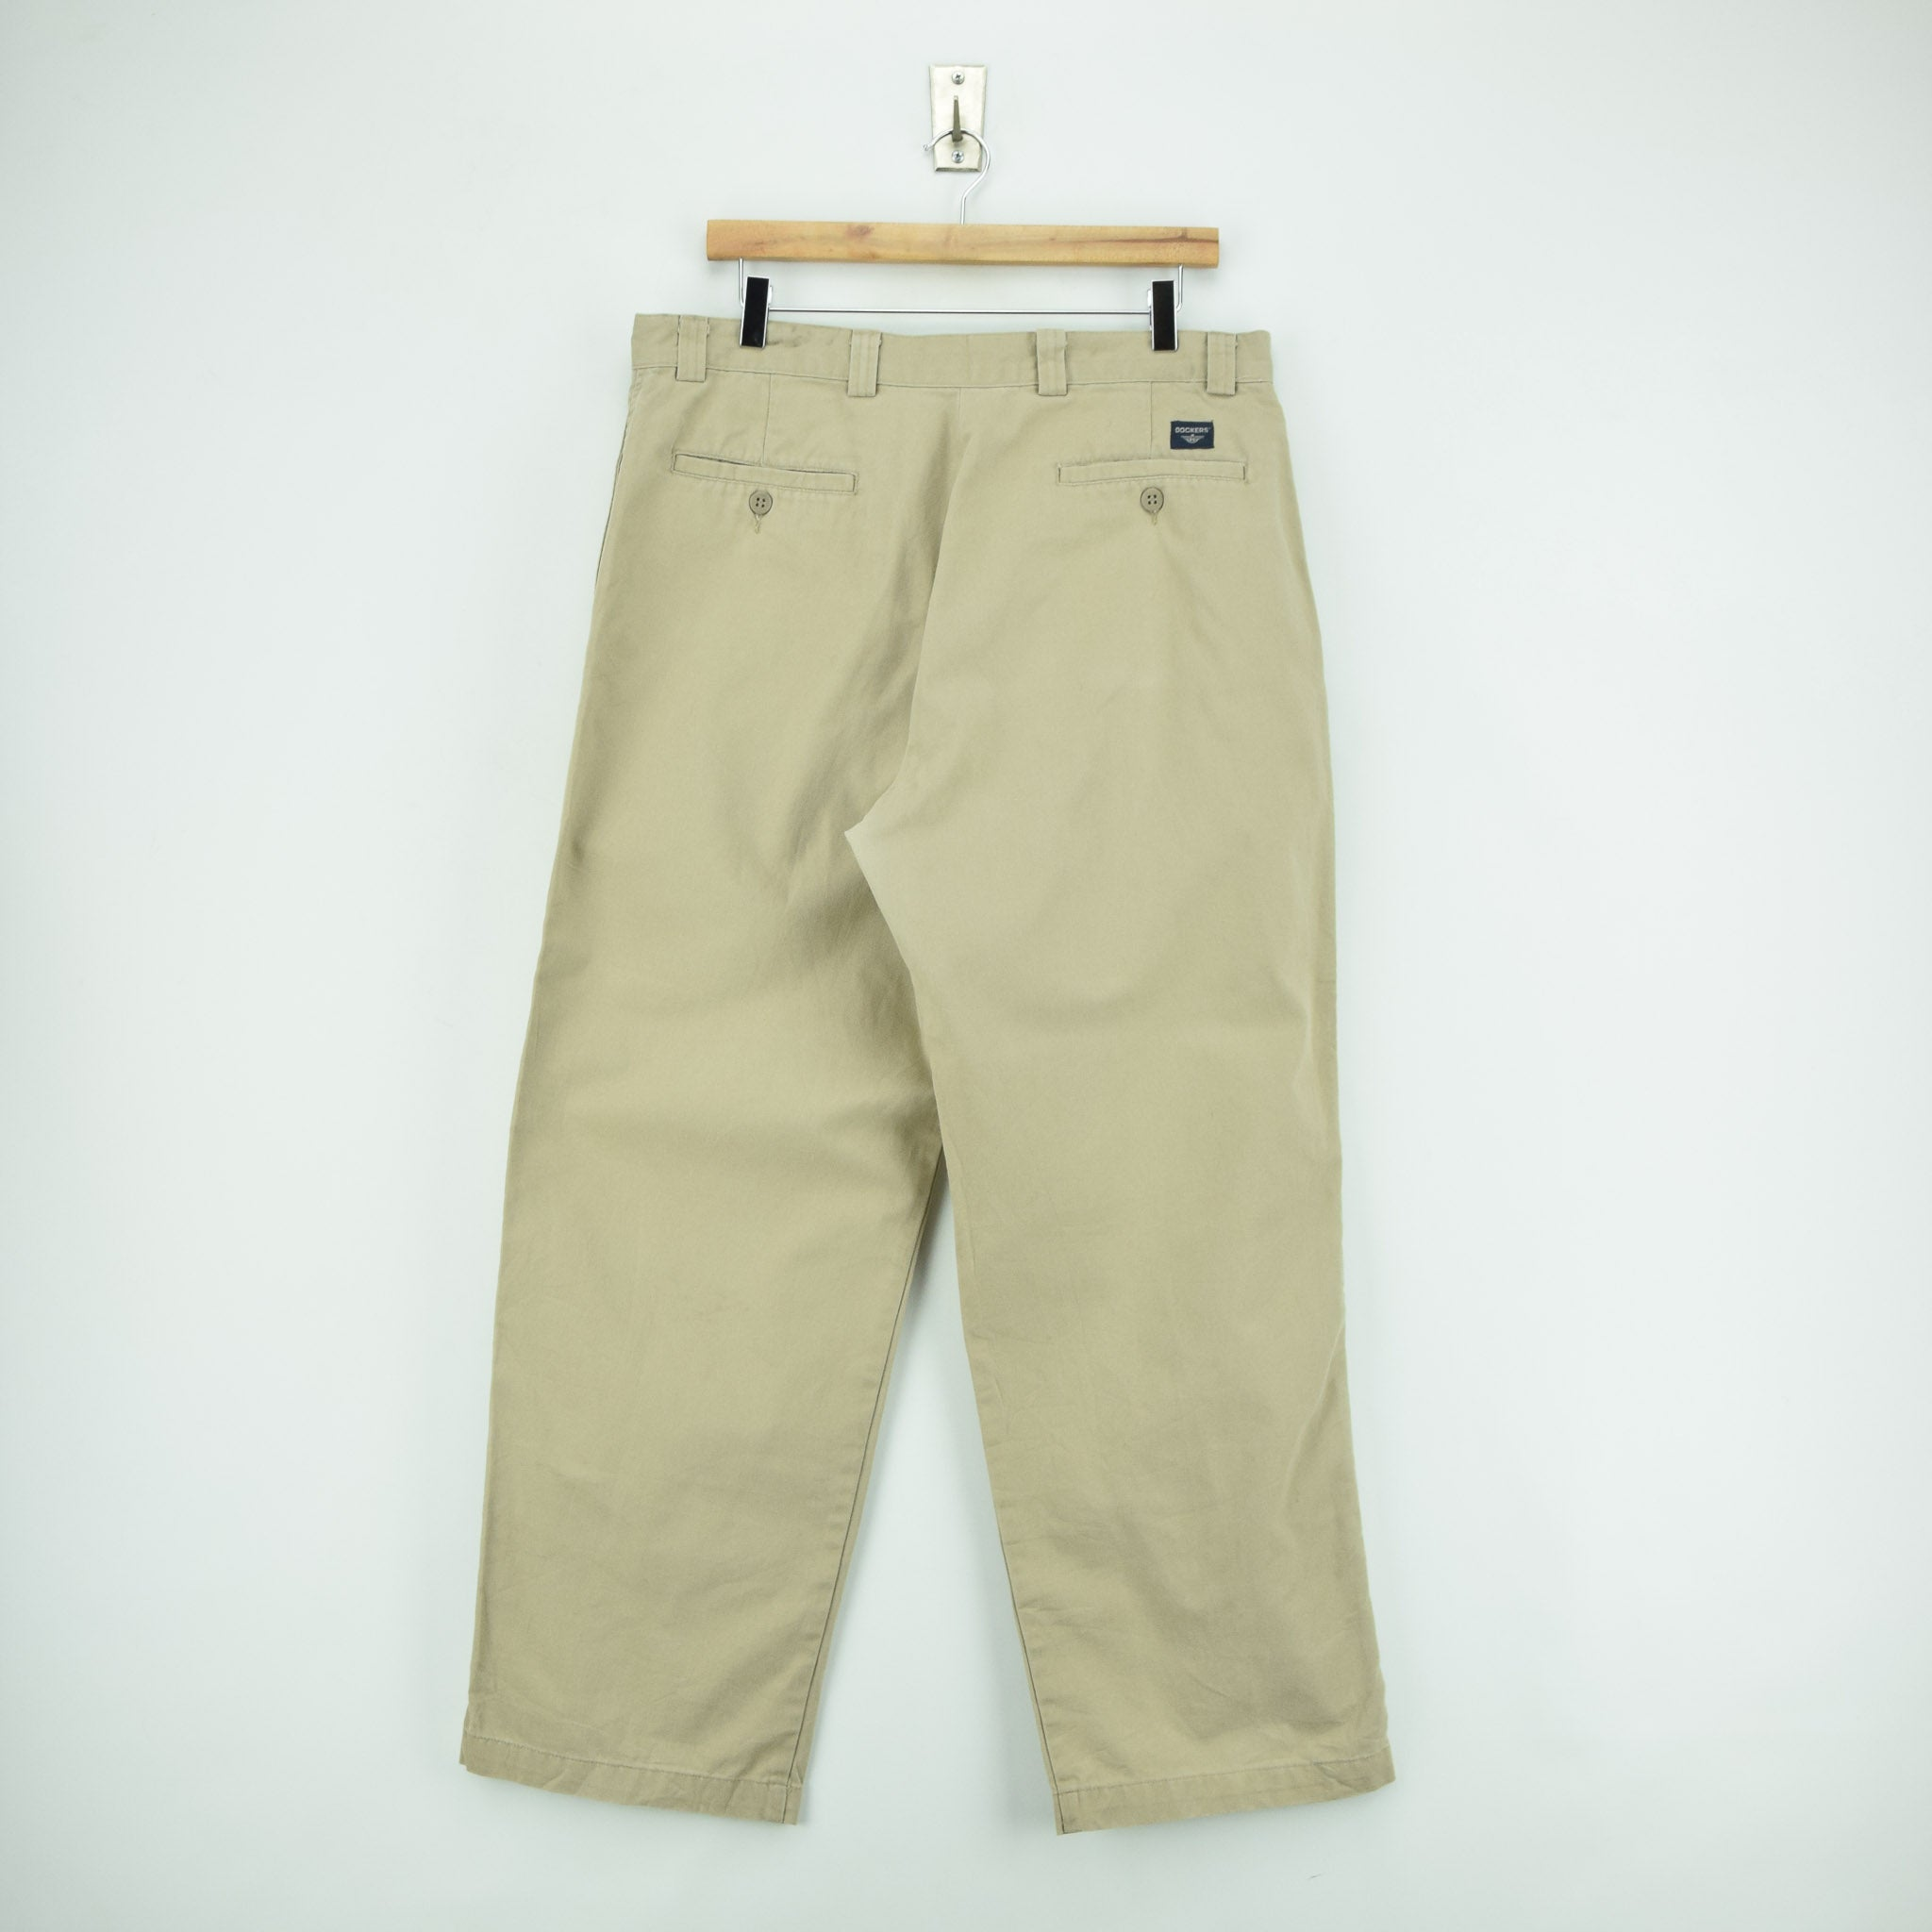 Vintage Dockers Chinos Stone Pants Flat Front Trousers 34 W 29 L back